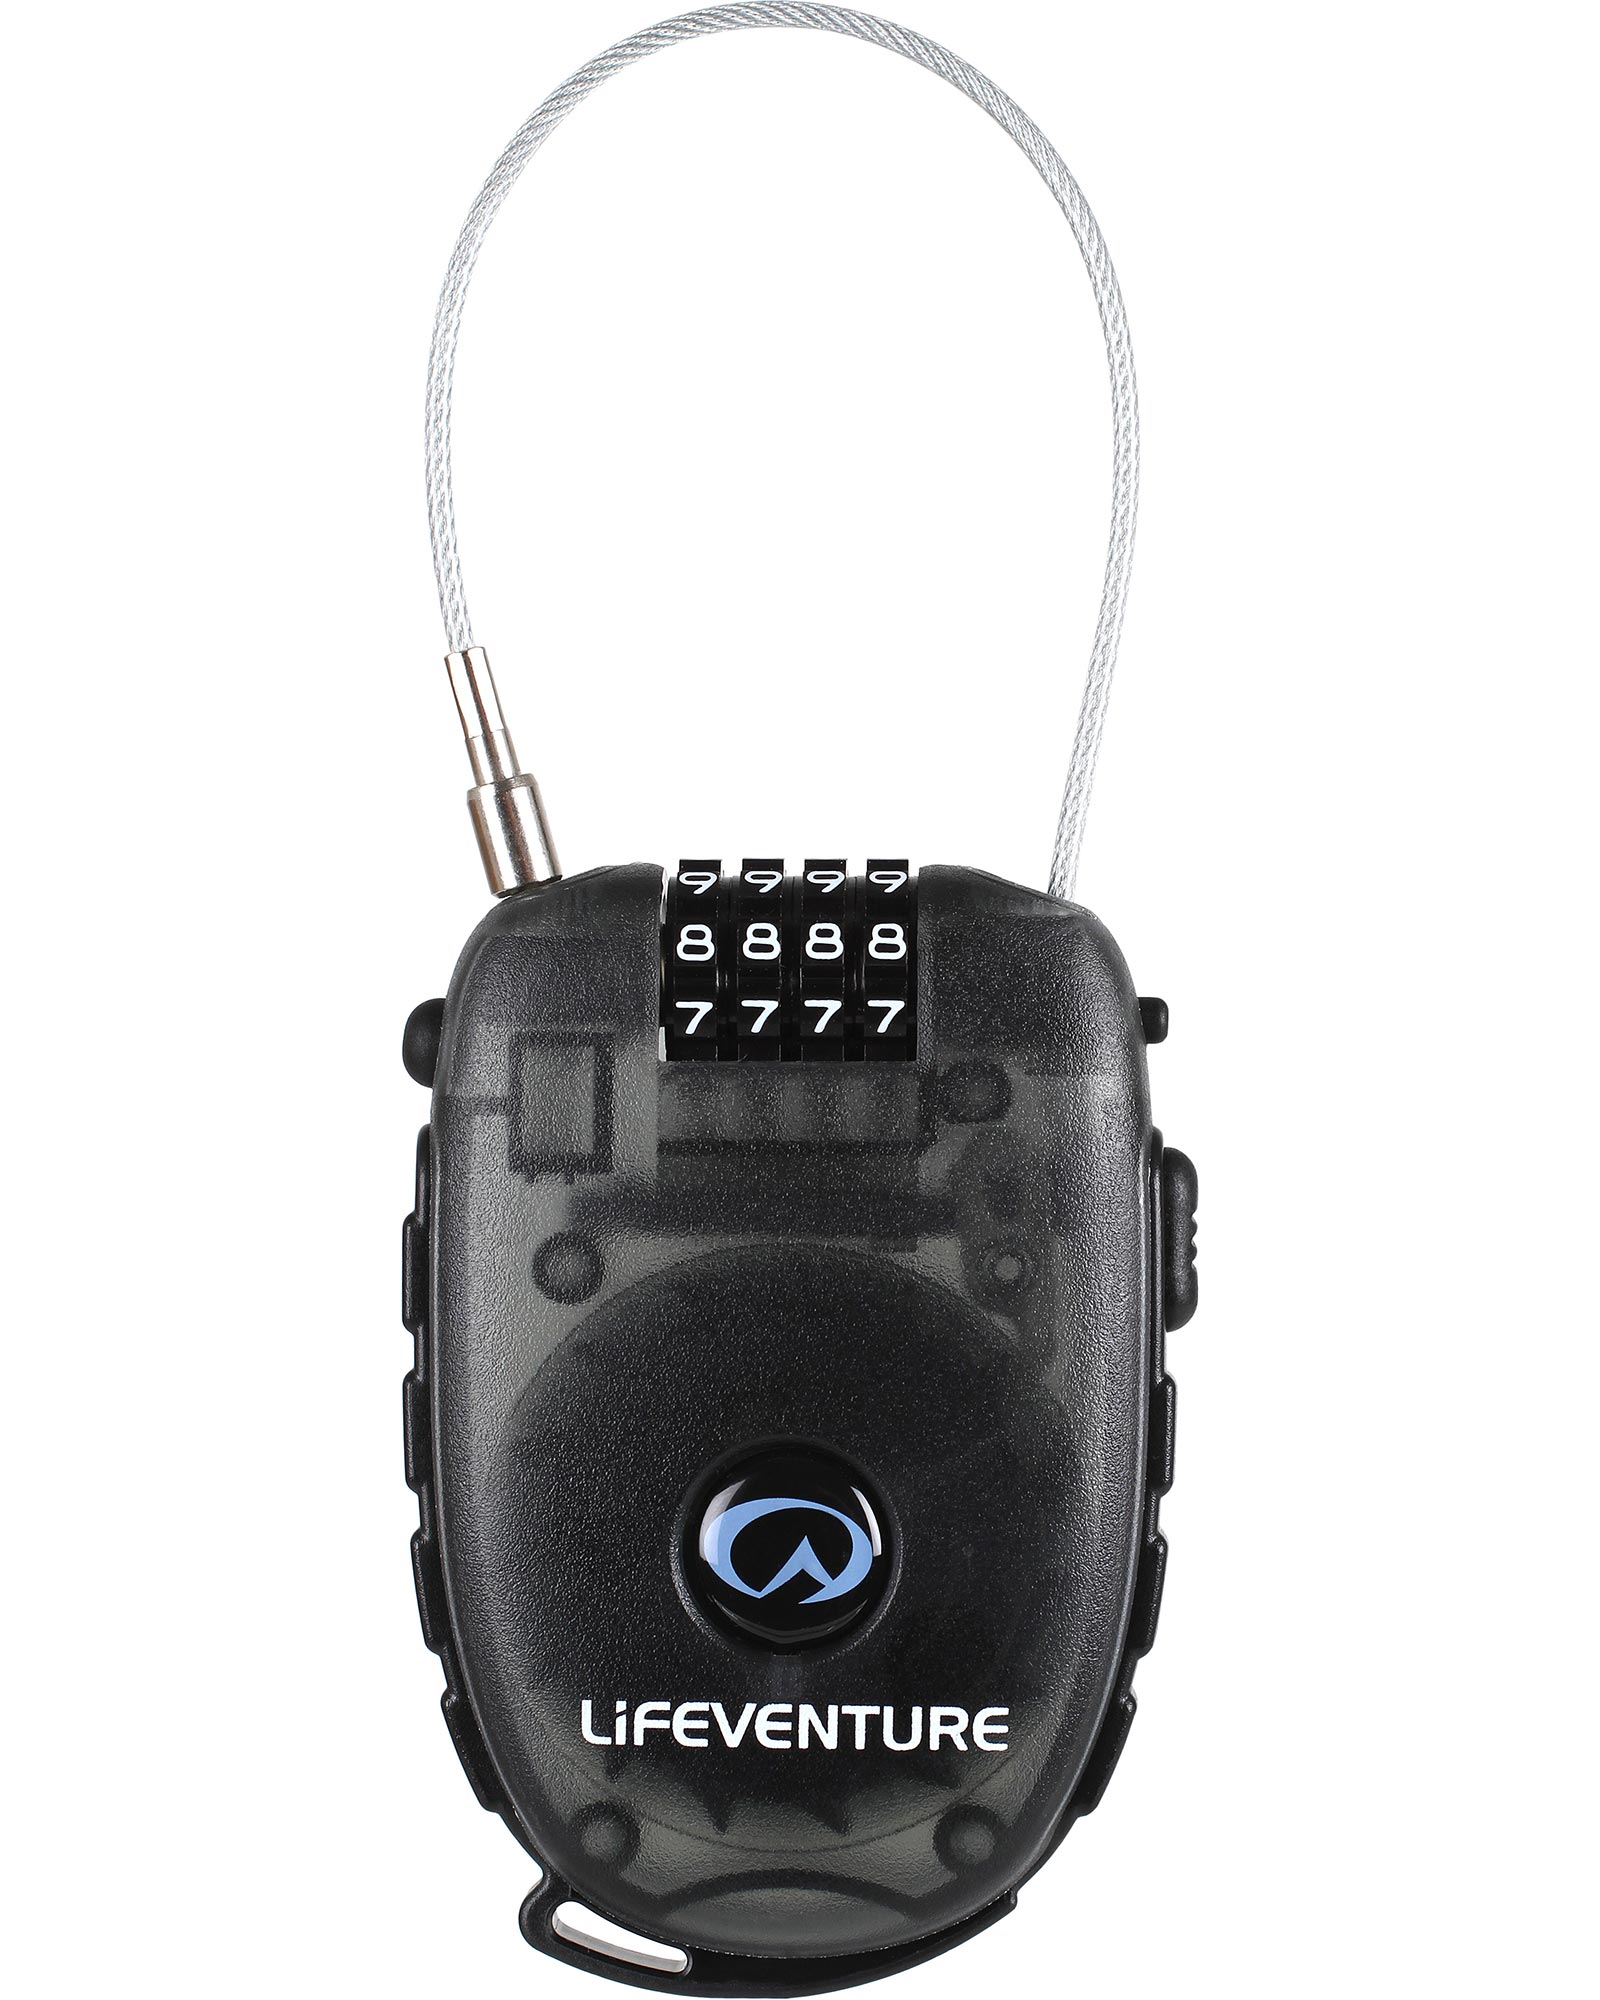 Lifeventure Rfid Body Wallet Chest